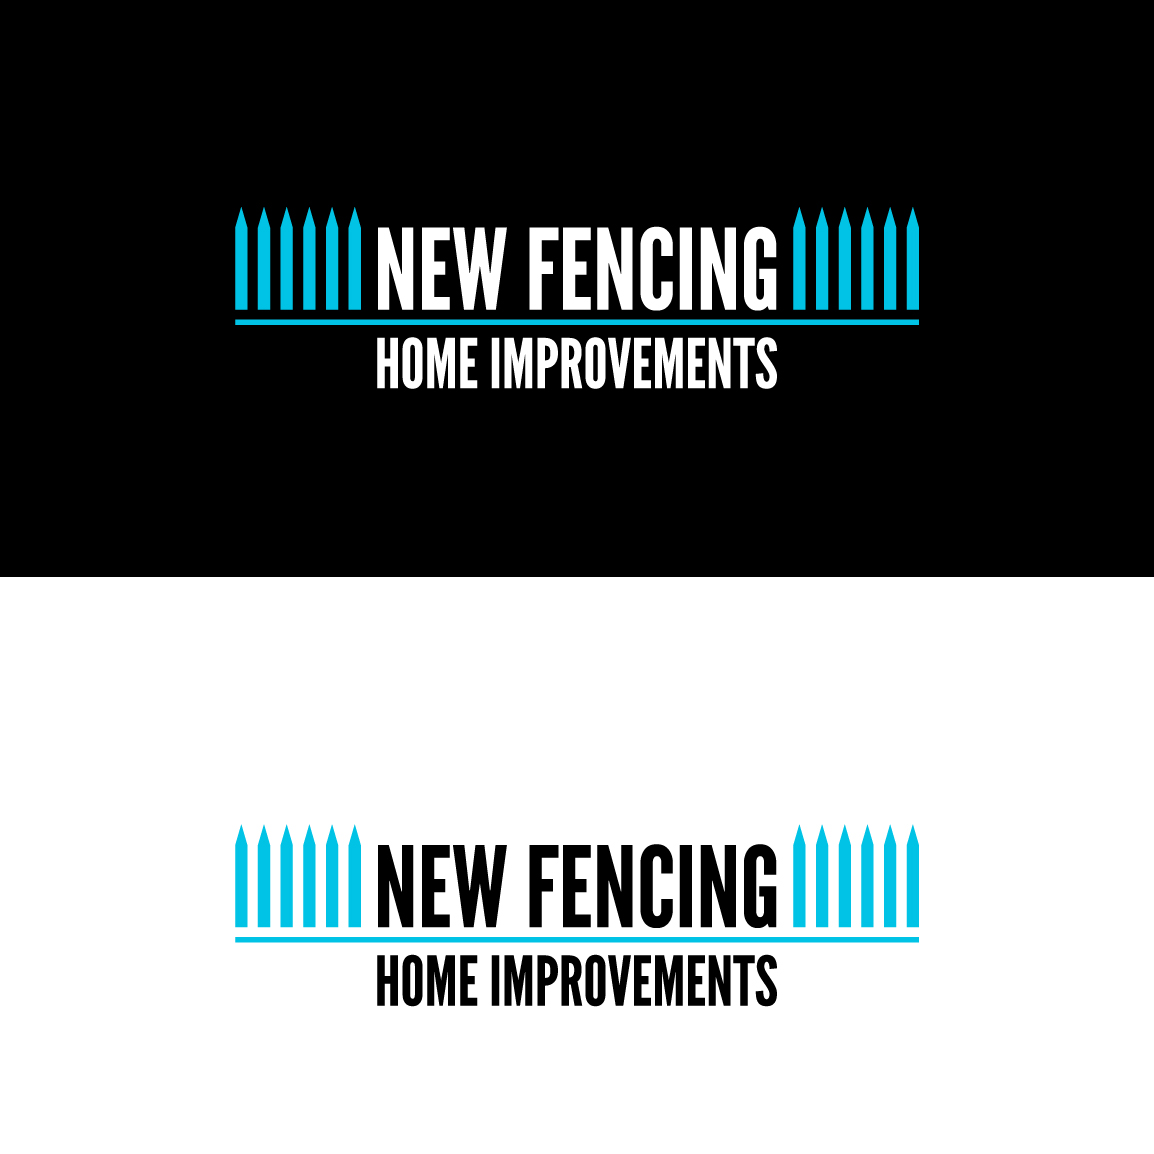 Logo Design By Fanolj Ademi For Design A Logo For A Fencing Company Who  Installs New